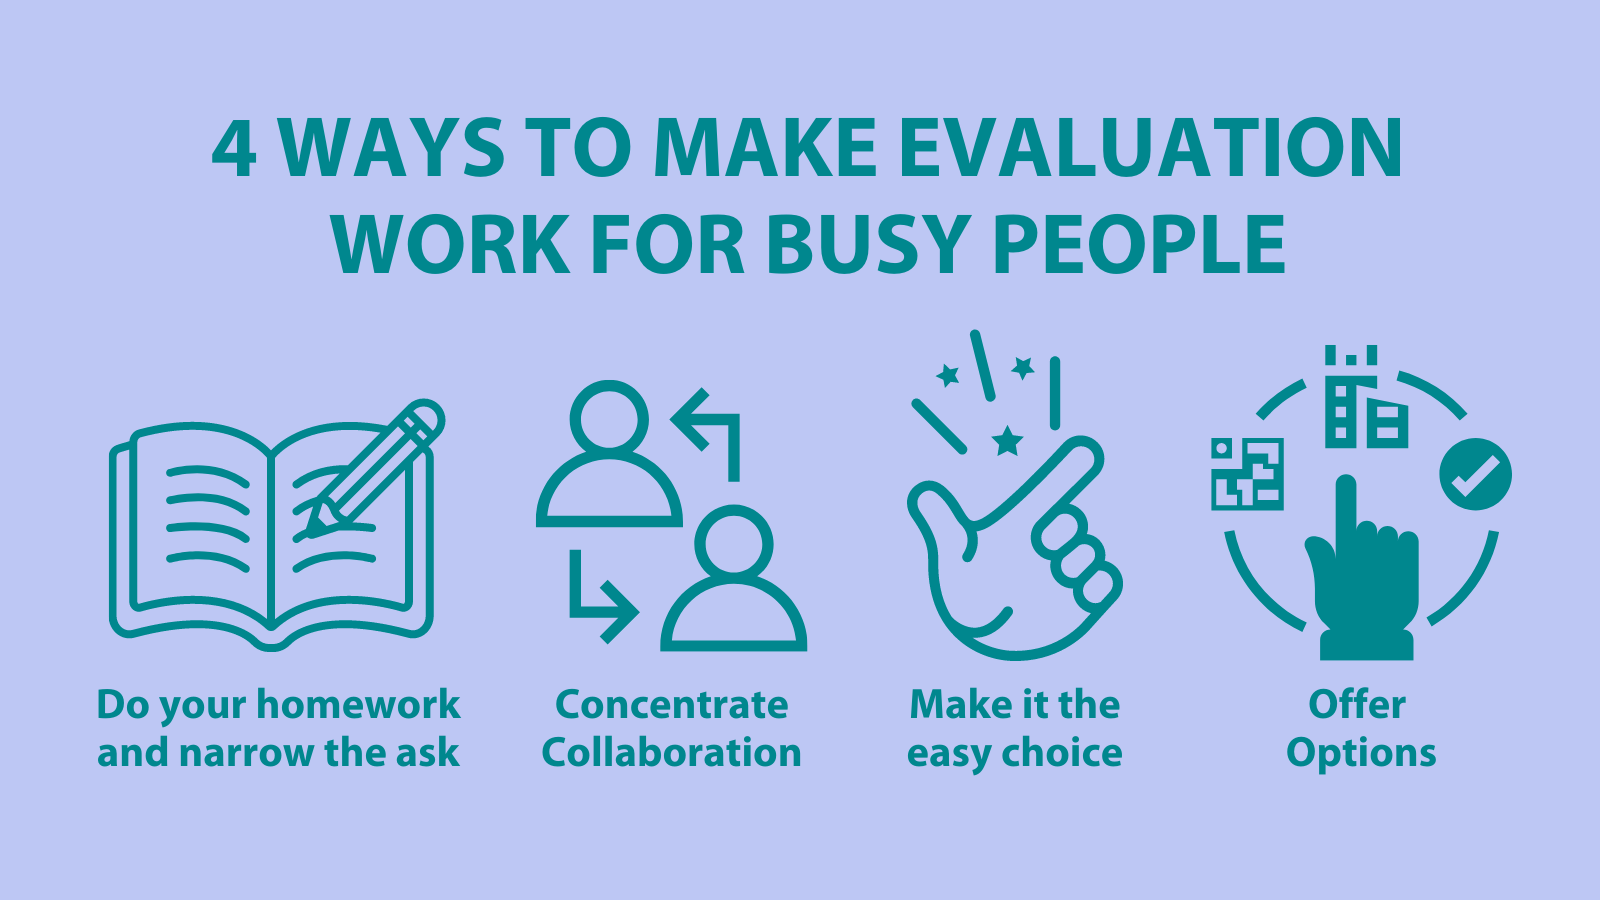 Image of four icons demonstrating each of the 4 tips for making evaluation work for busy people: 1) do you homework and narrow the ask 2) concentrate collaboration 3) make it the easy choice and 4) offer options